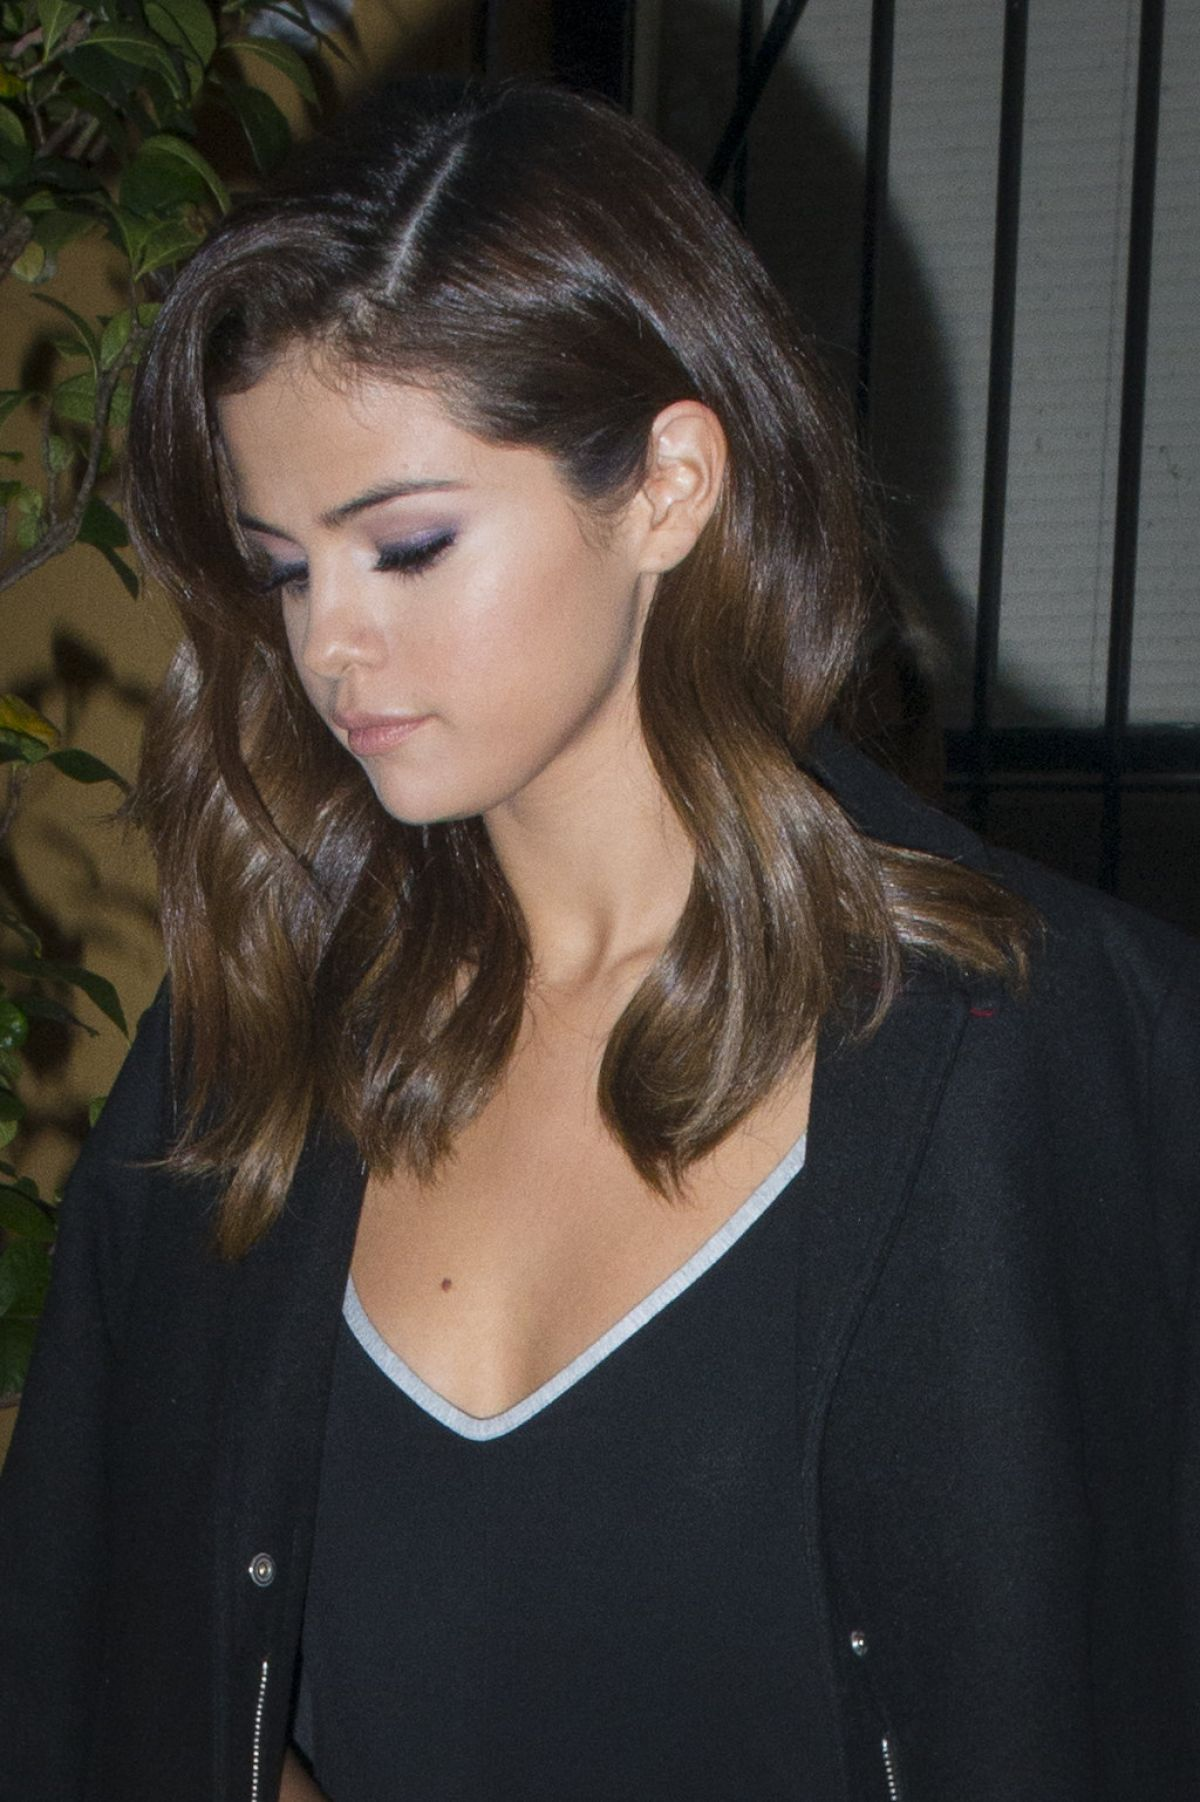 SELENA GOMEZ Night Out in Sydney 08/09/2016